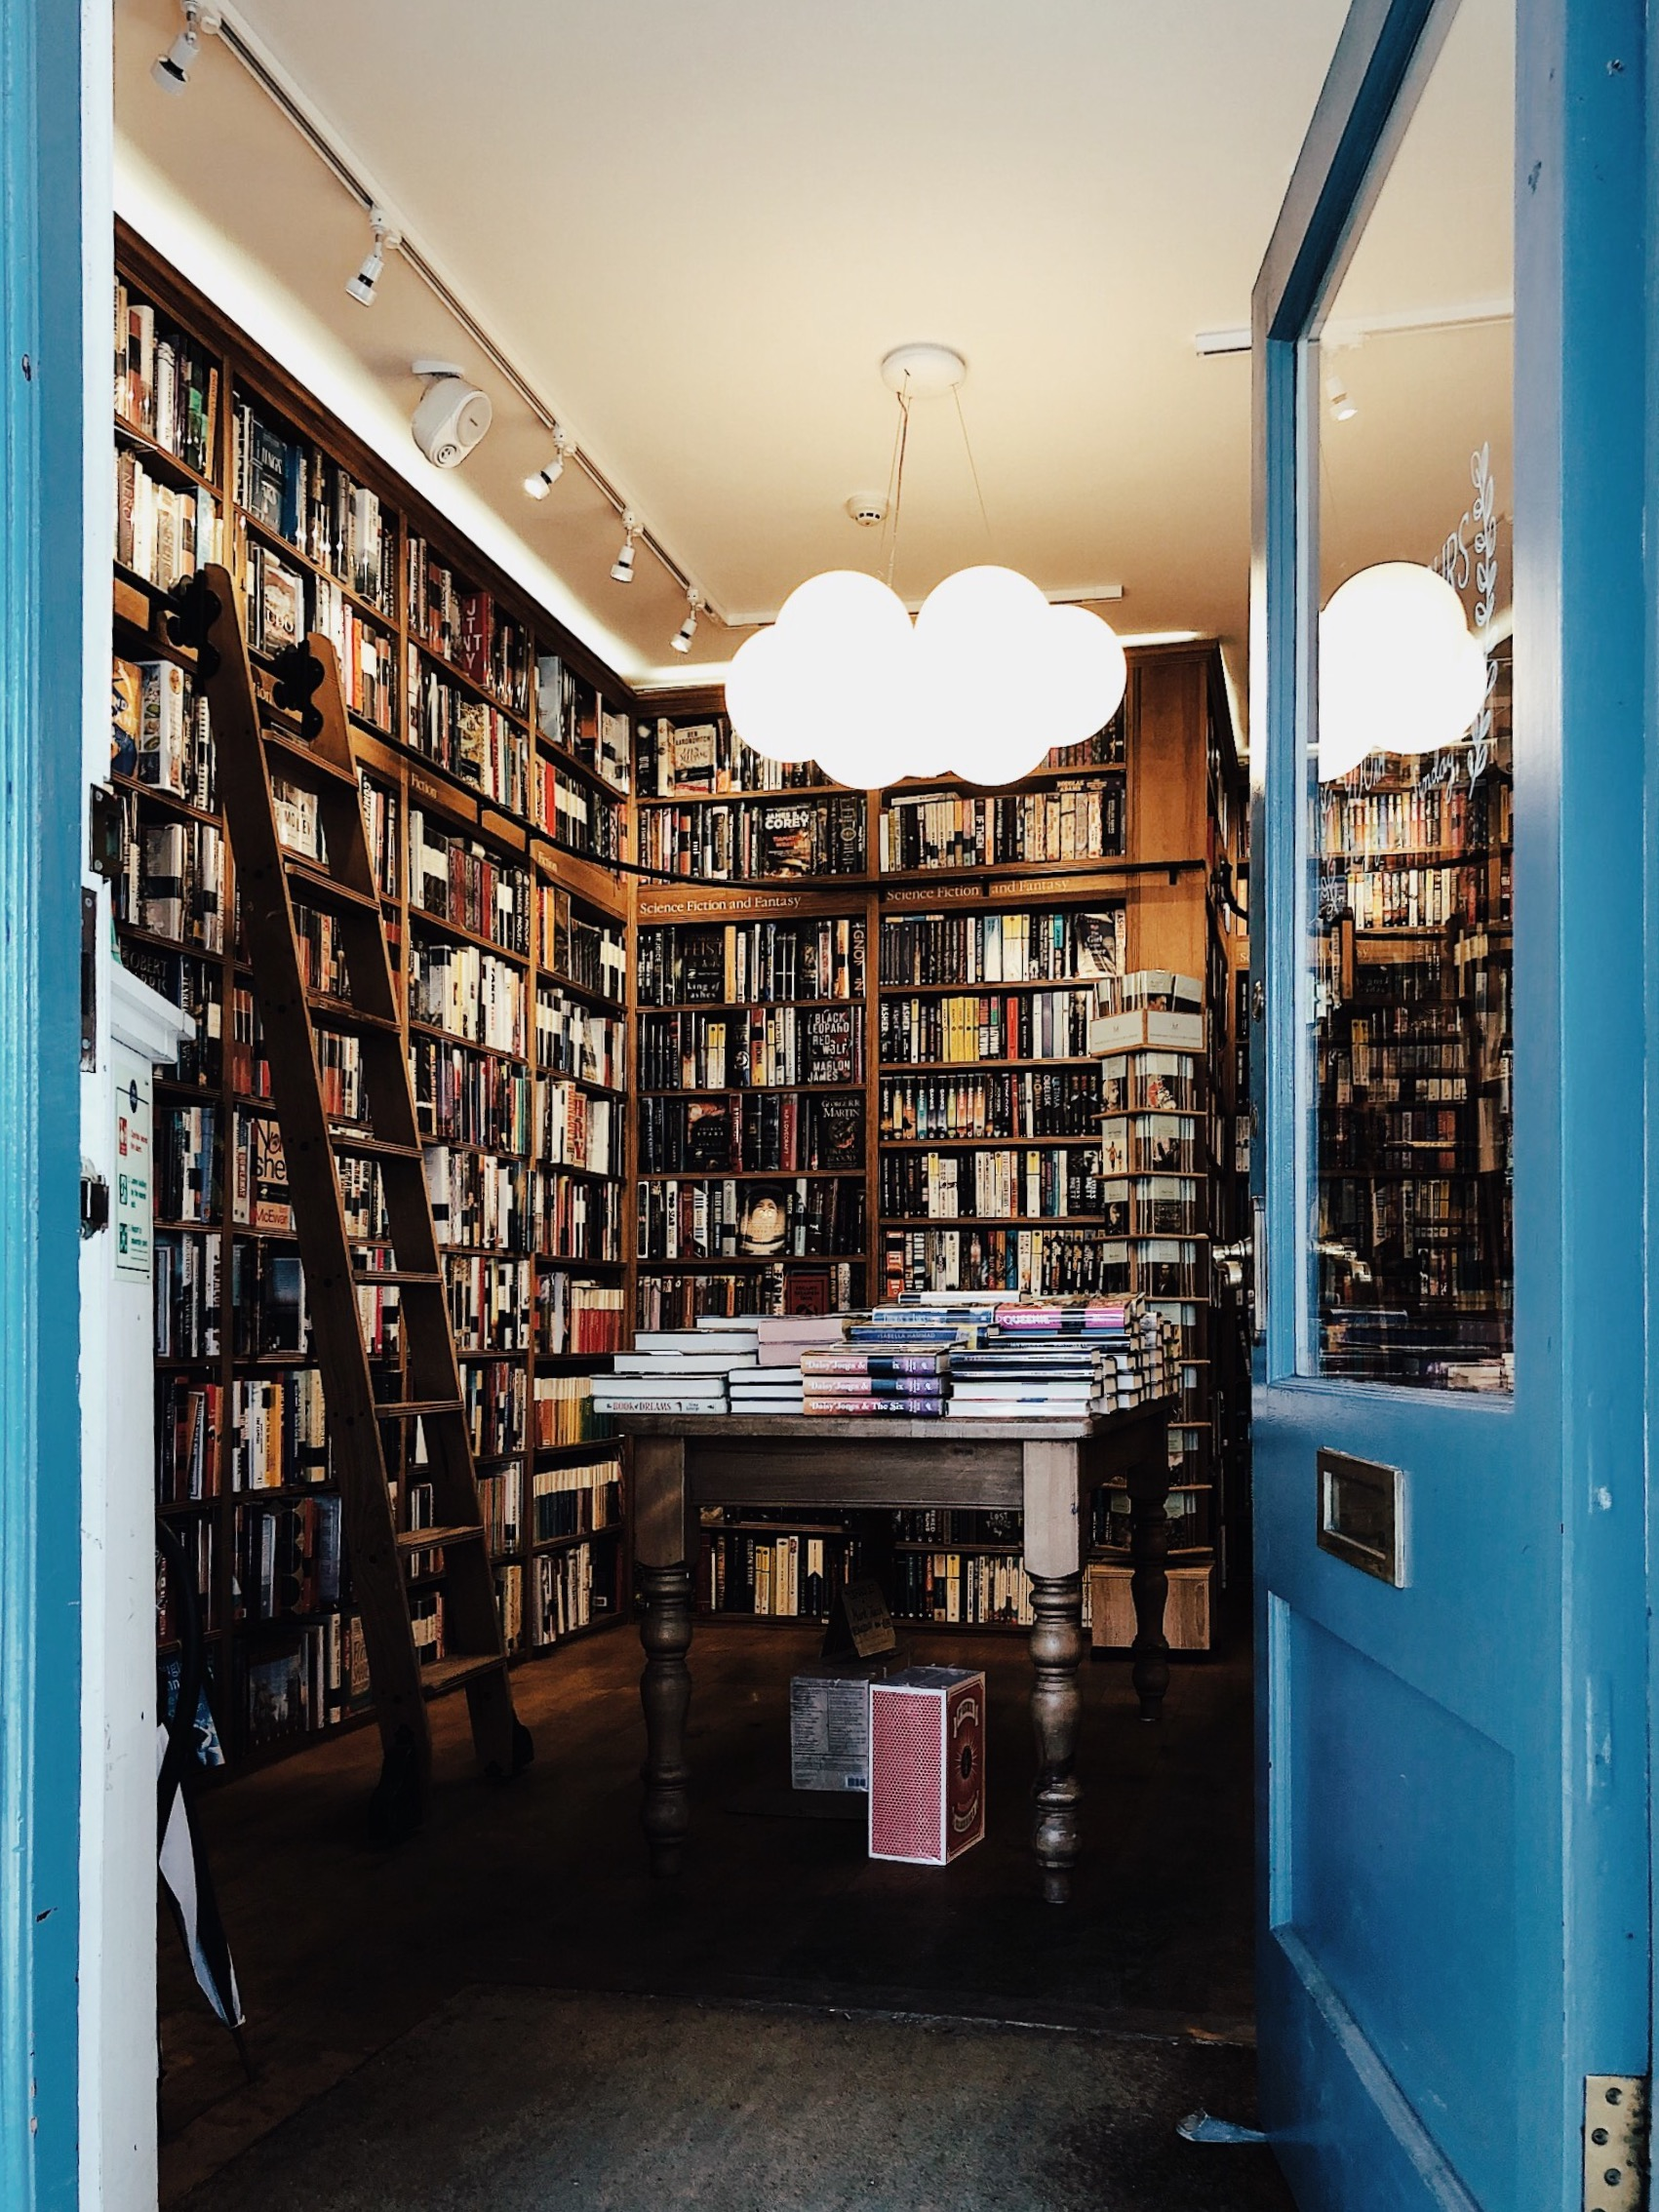 Topping and Company Booksellers, photographed by Jessica Armstrong.